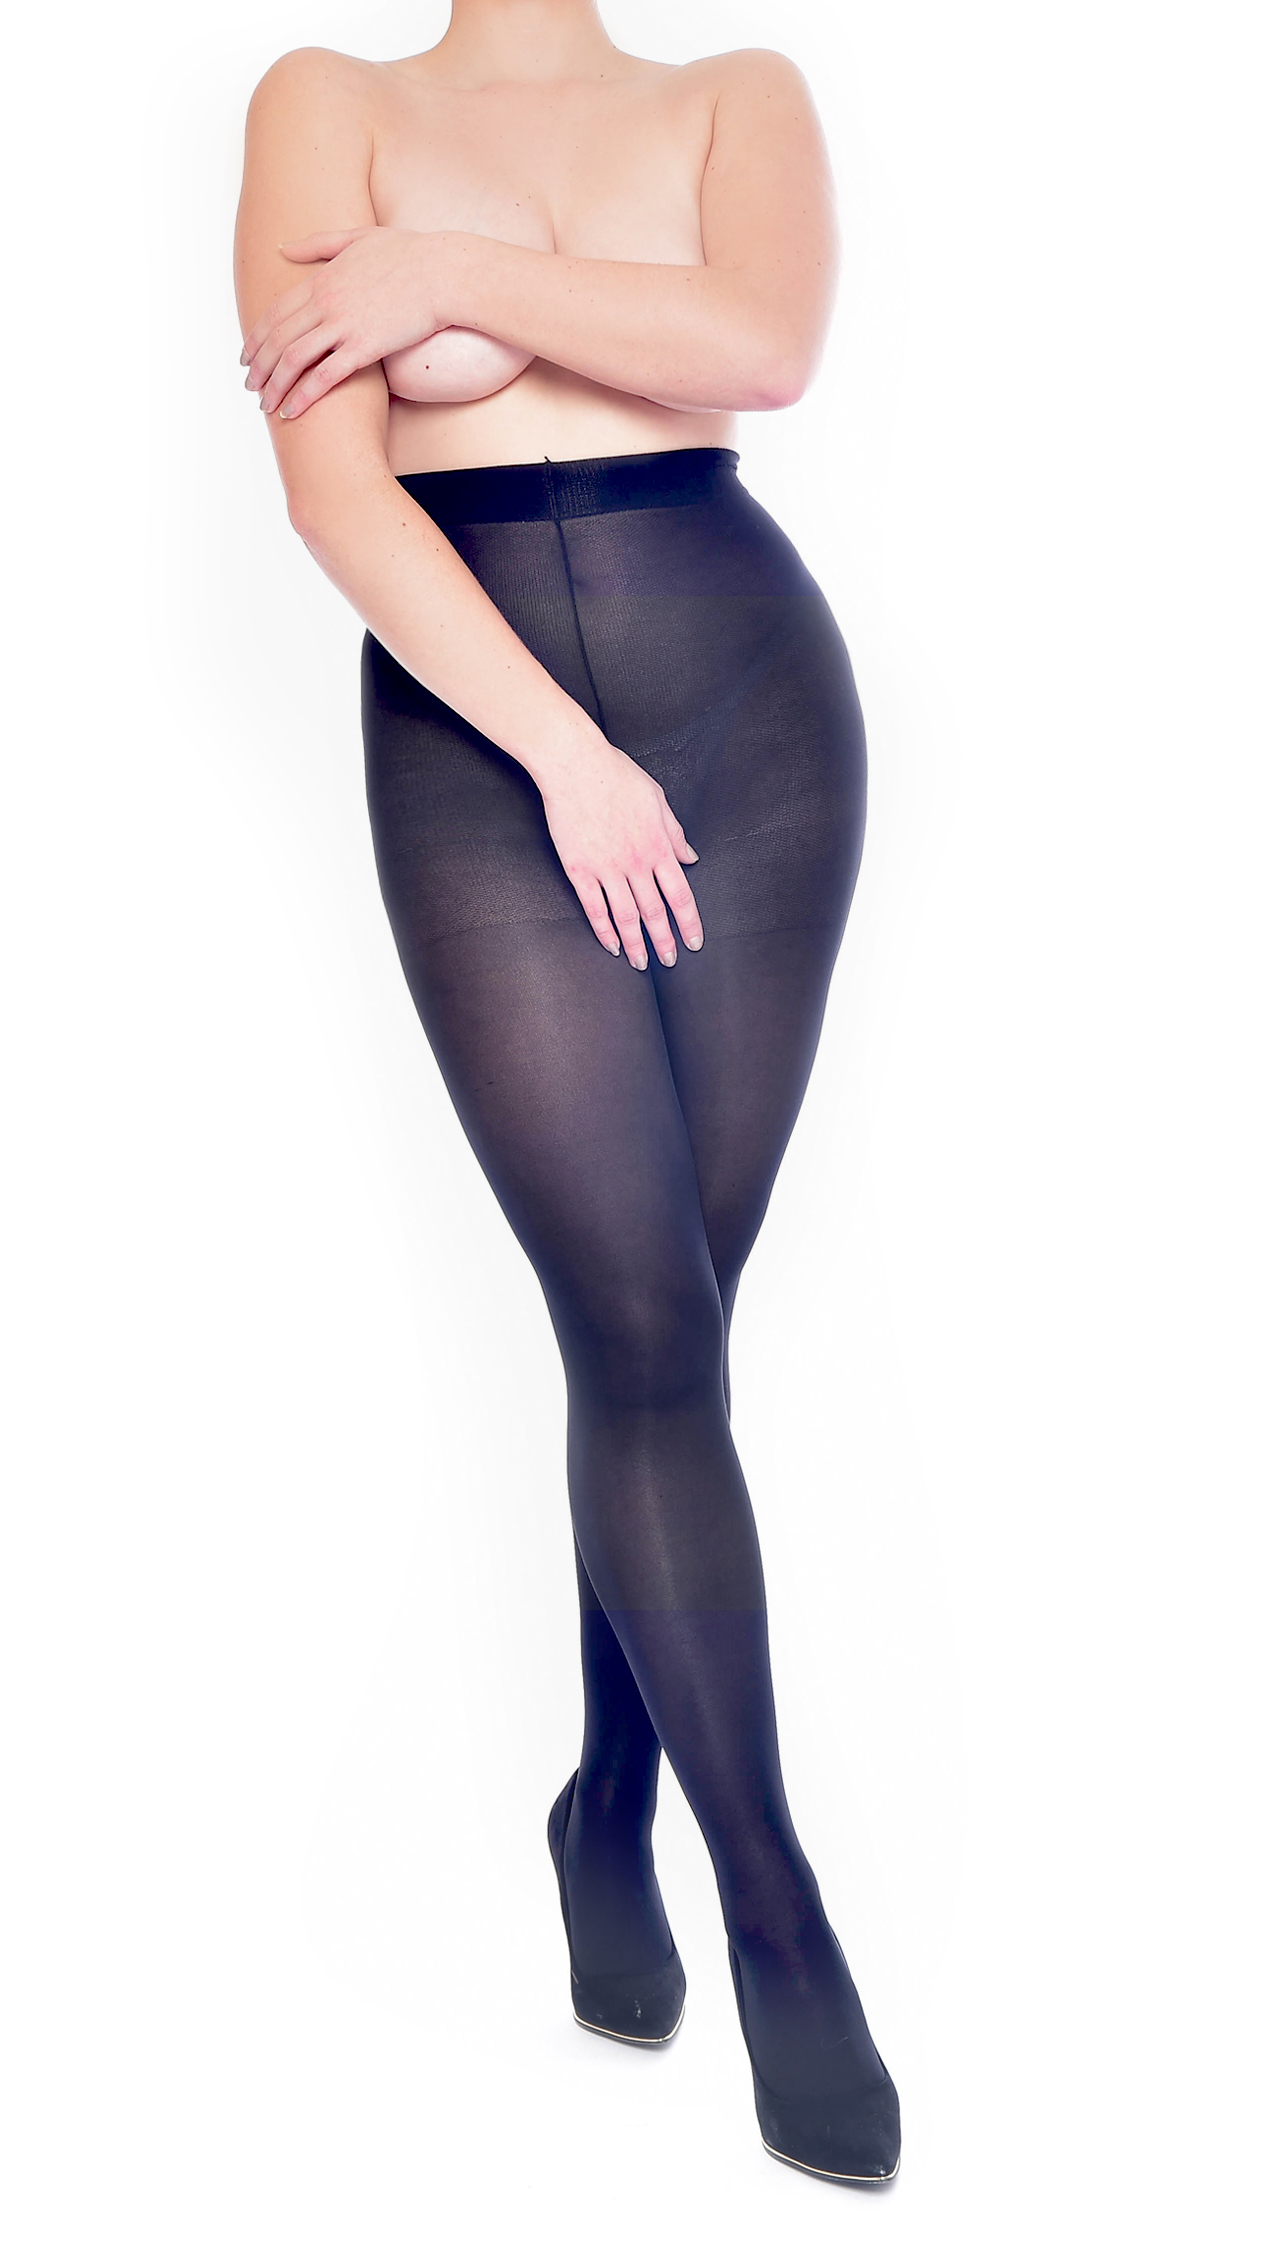 b9c80d2530a72 100 DENIER BLACK OPAQUE CROTCHLESS OPEN CROTCH TIGHTS ONE SIZE ...